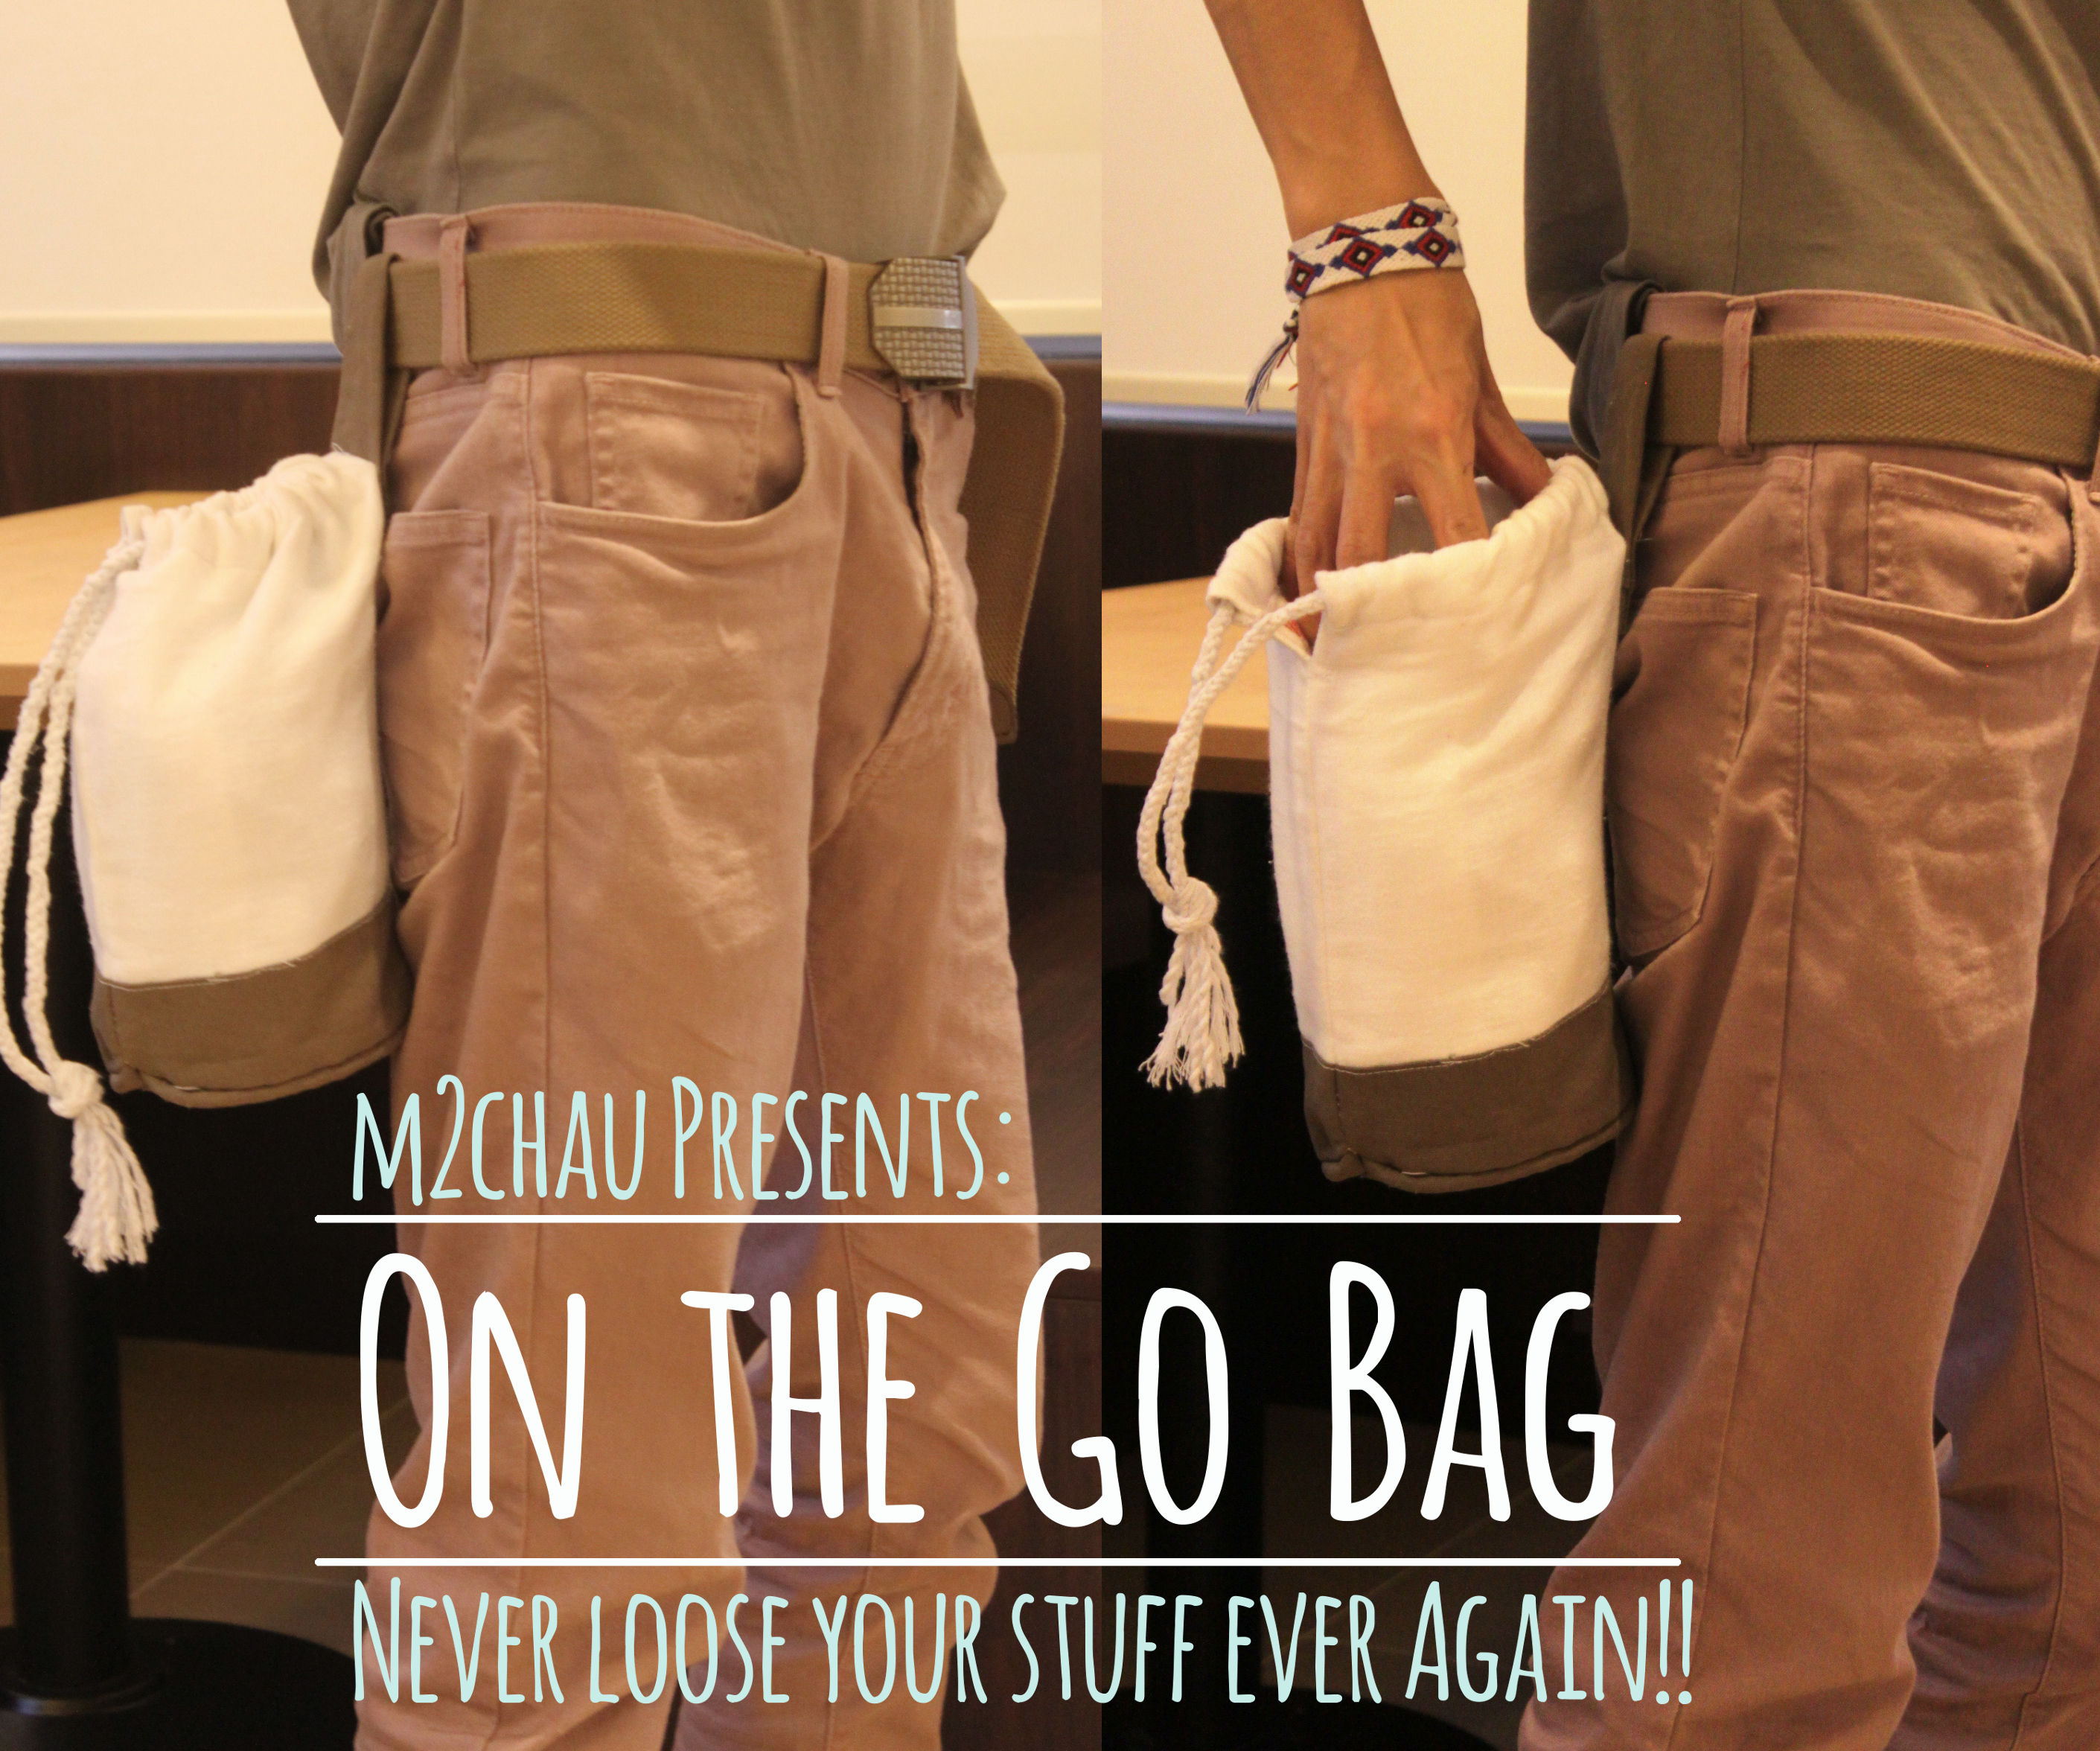 On the Go Bag (never loose ur stuff ever again!!)